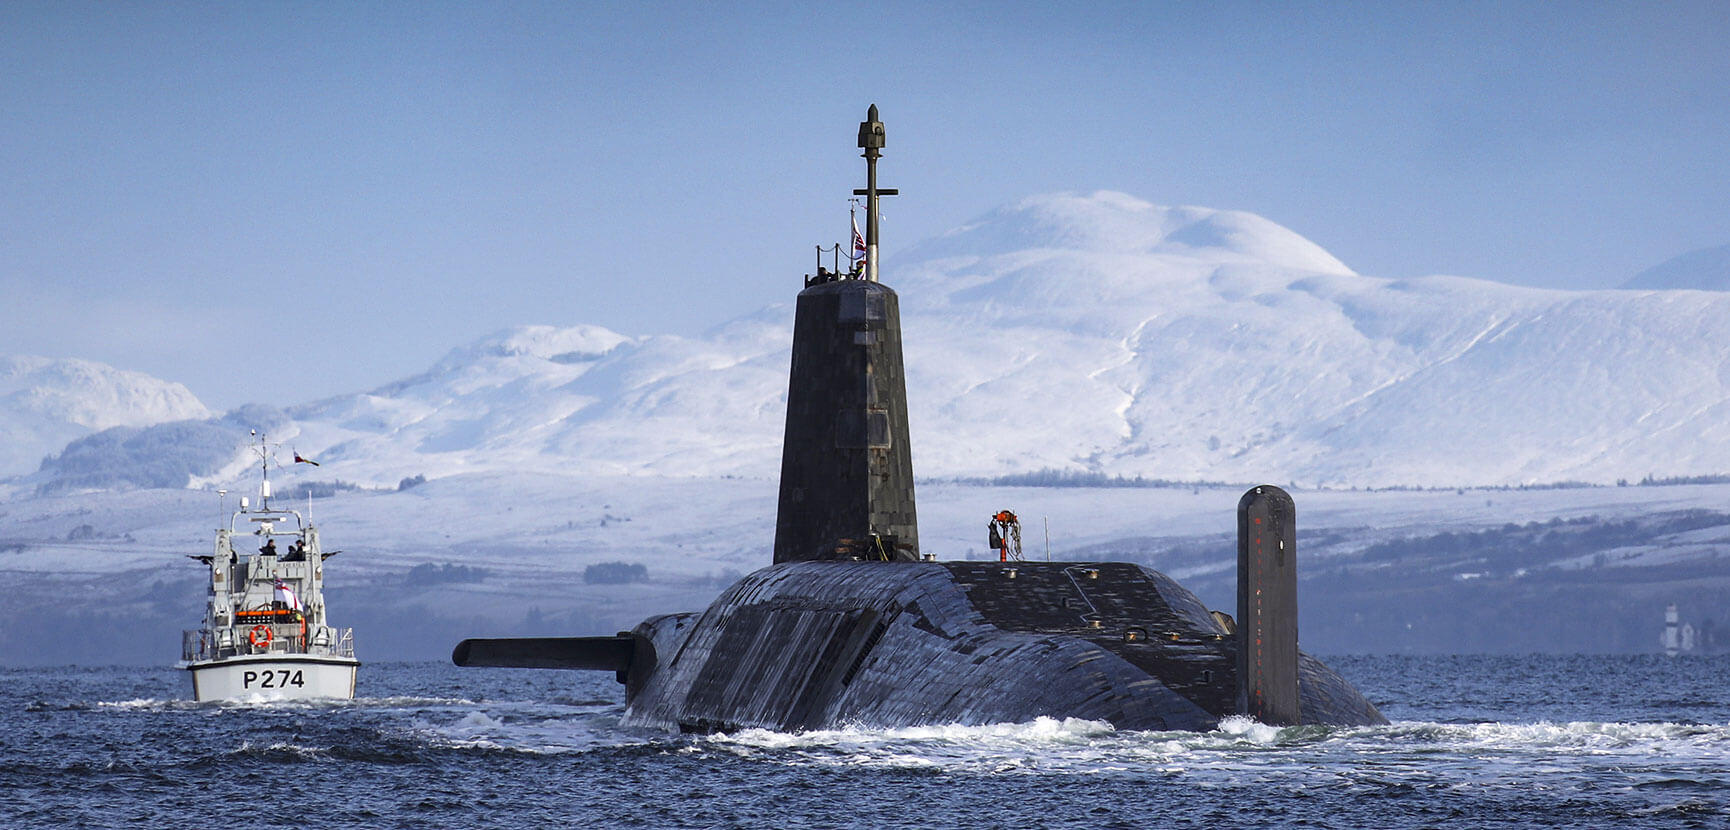 Scottish nationalism continues to cast a shadow over the Royal Navy